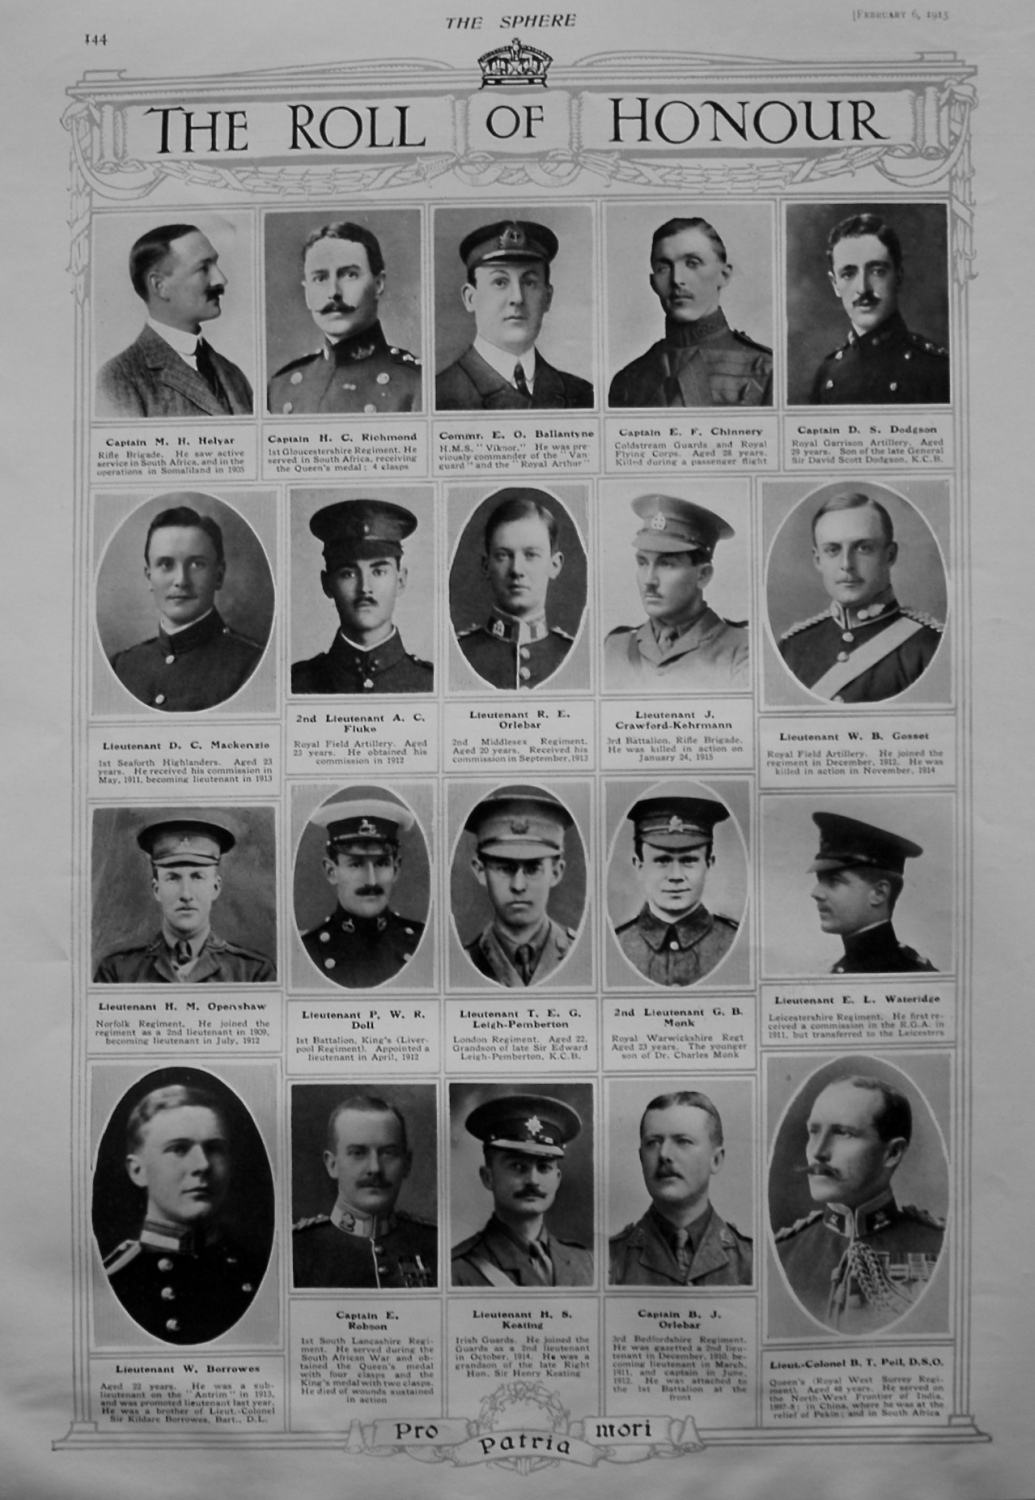 The Roll of Honour. February 6th, 1915.